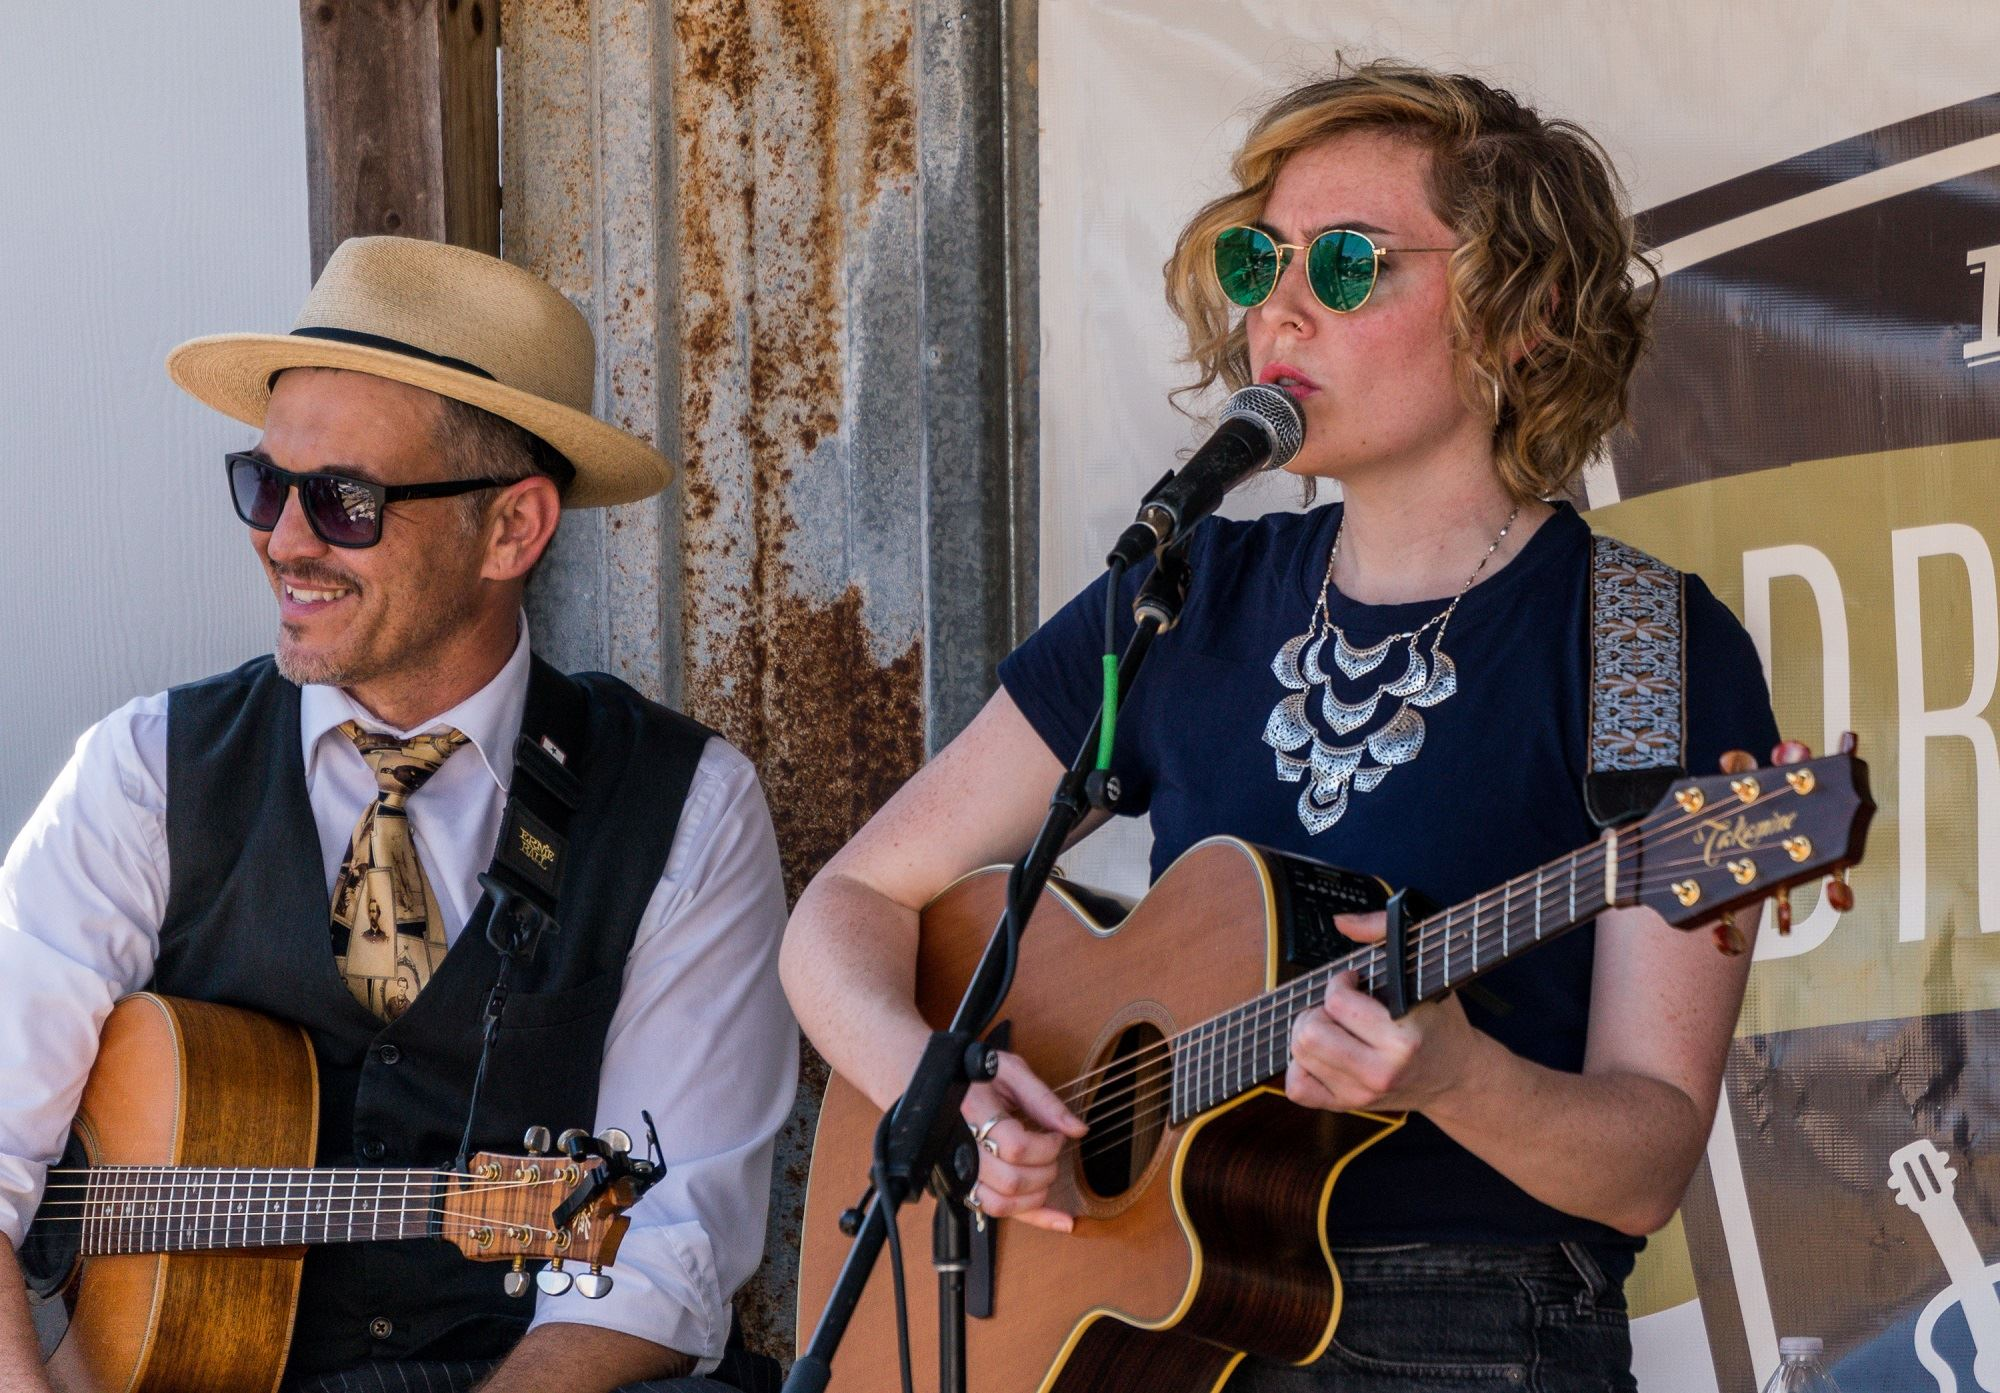 Two songwriters on an outdoor stage.